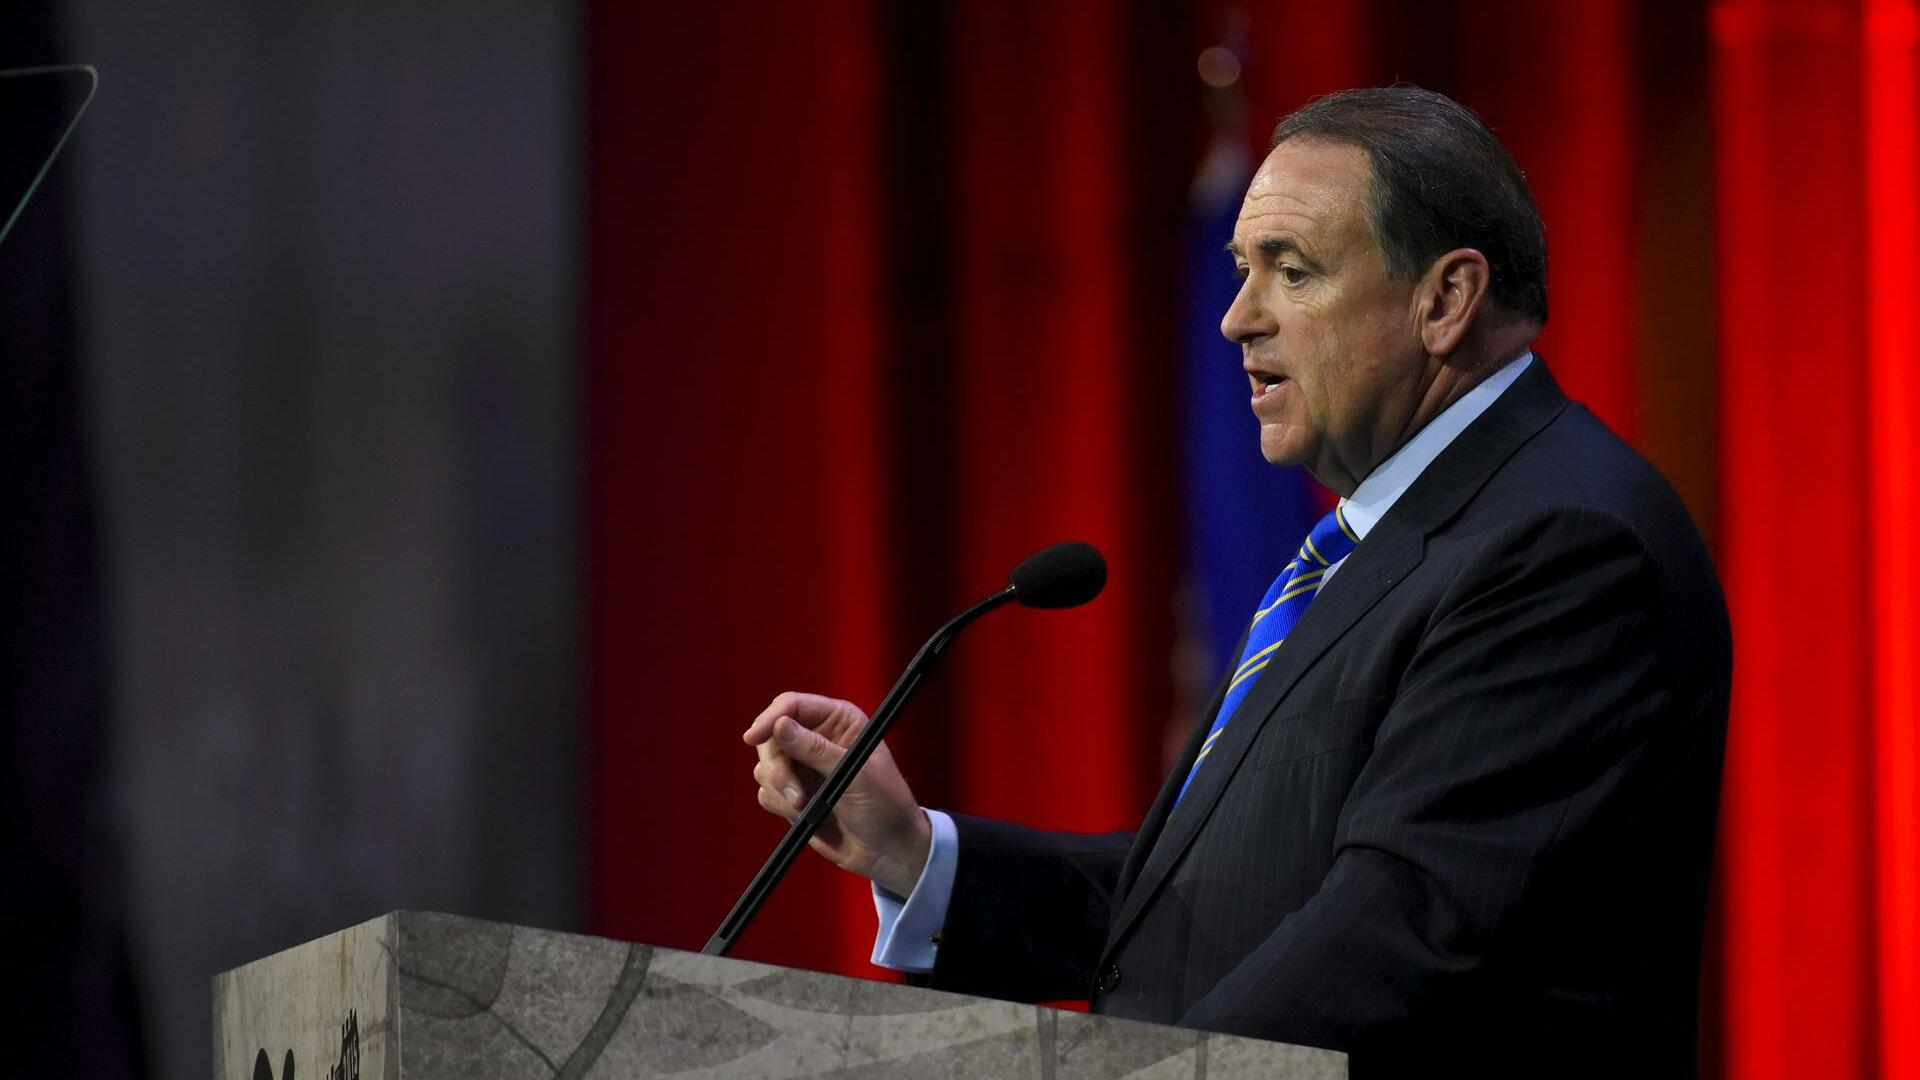 Mike Huckabee Quelle: REUTERS